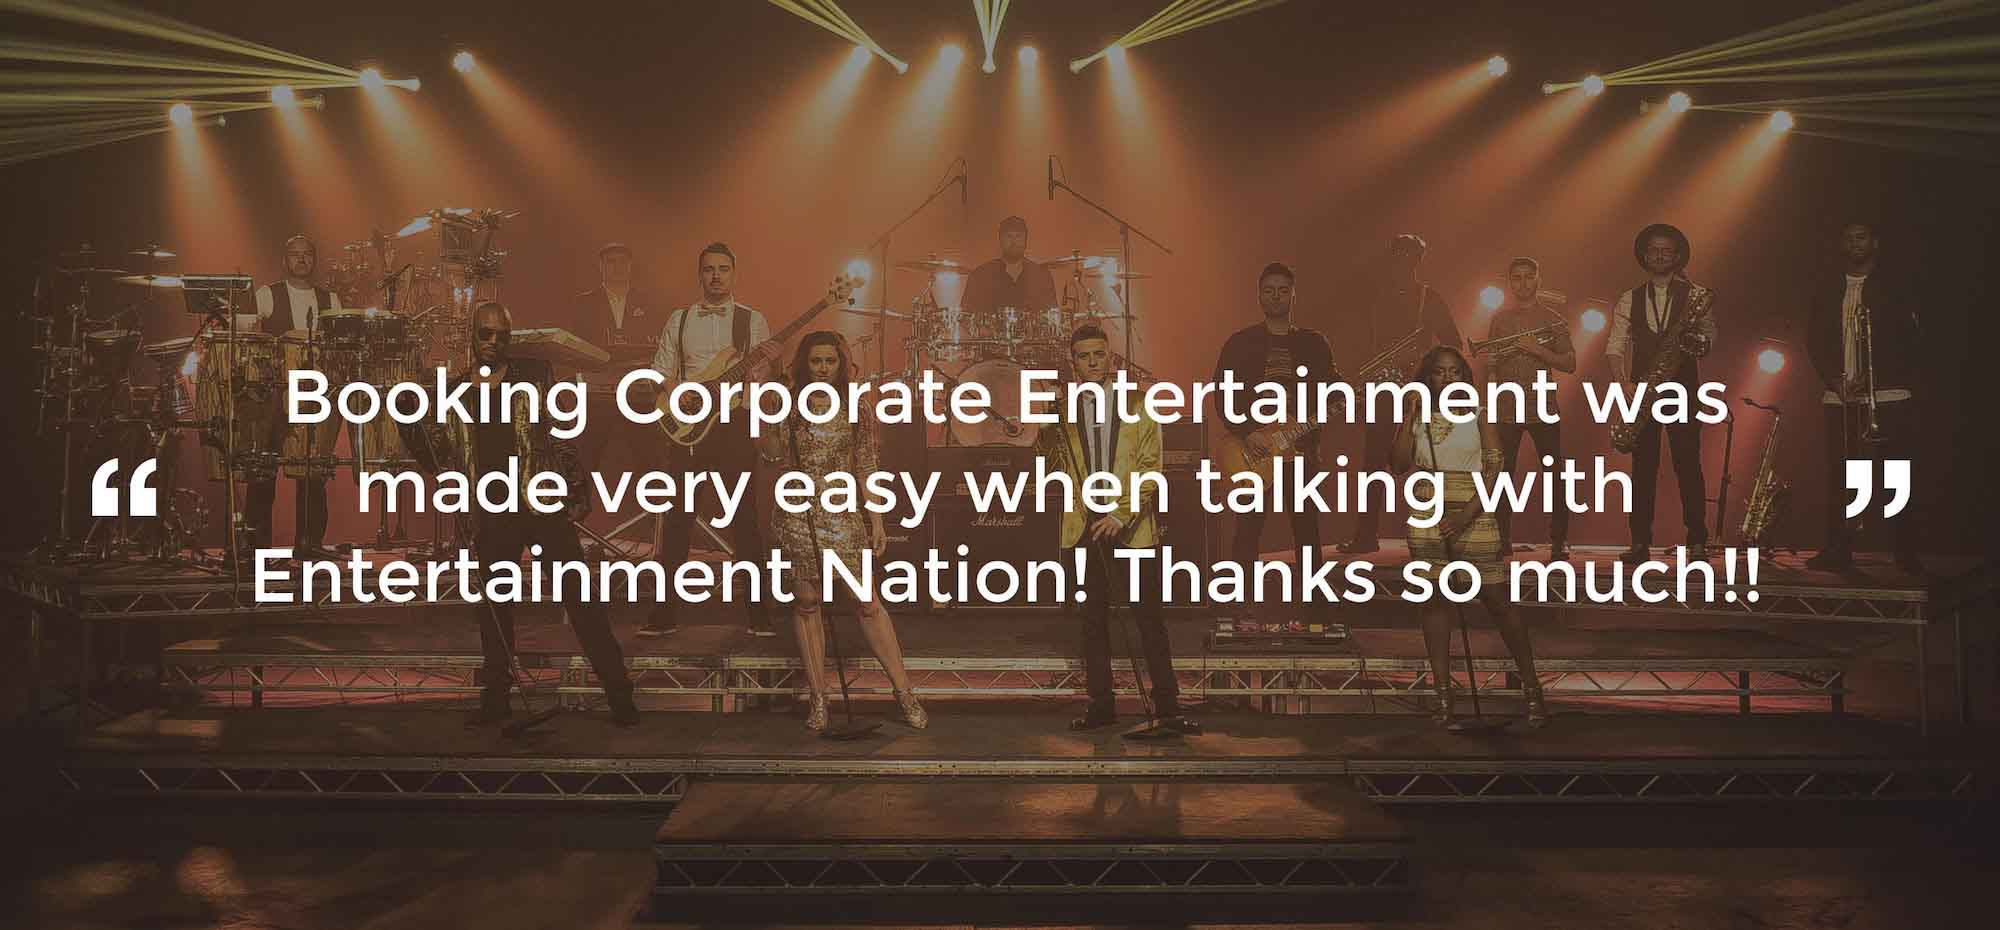 Review of Corporate Entertainment Liverpool